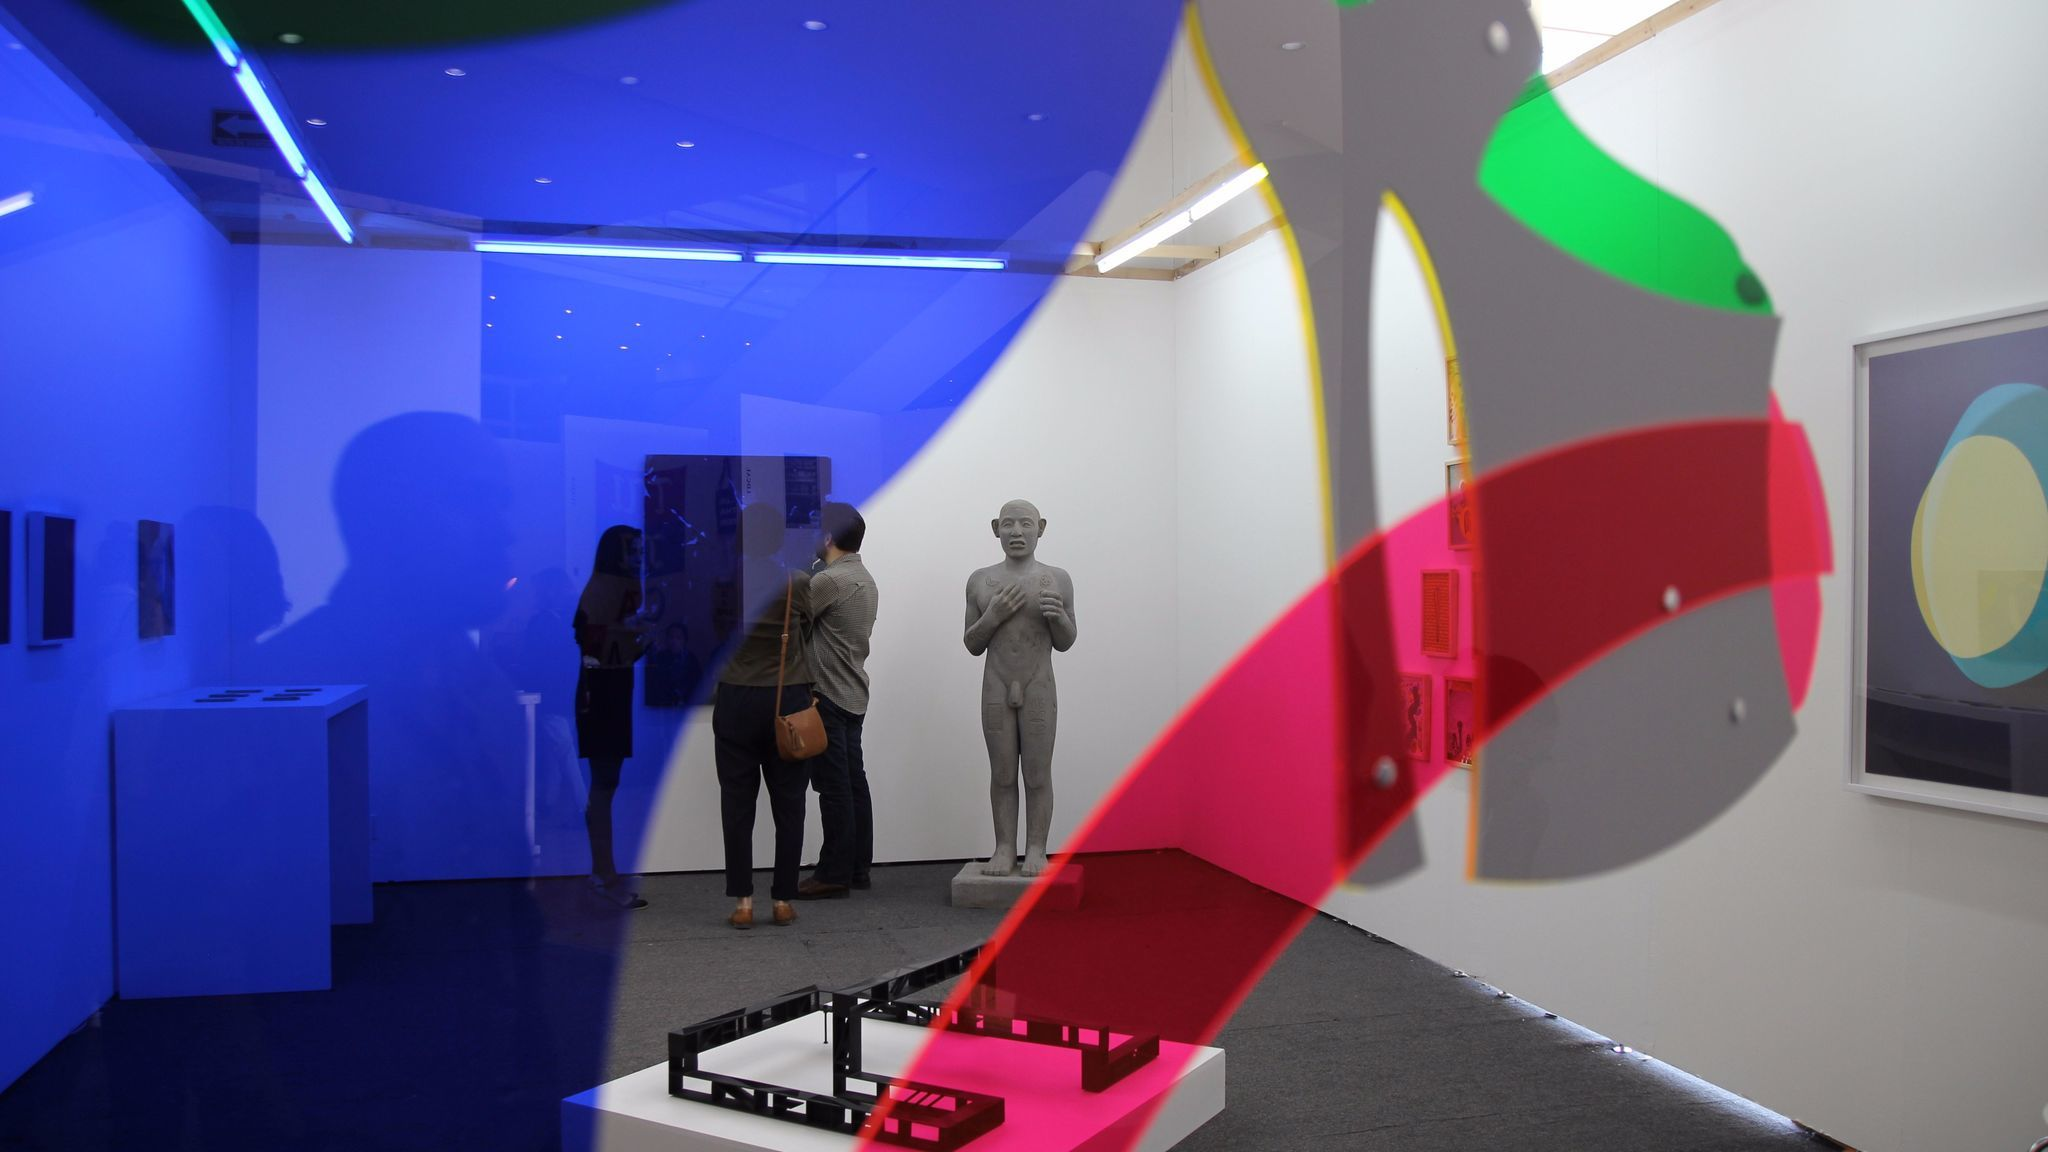 An installation view of works from the independent art space Yautepec at the Material Art Fair in Mexico City in February.